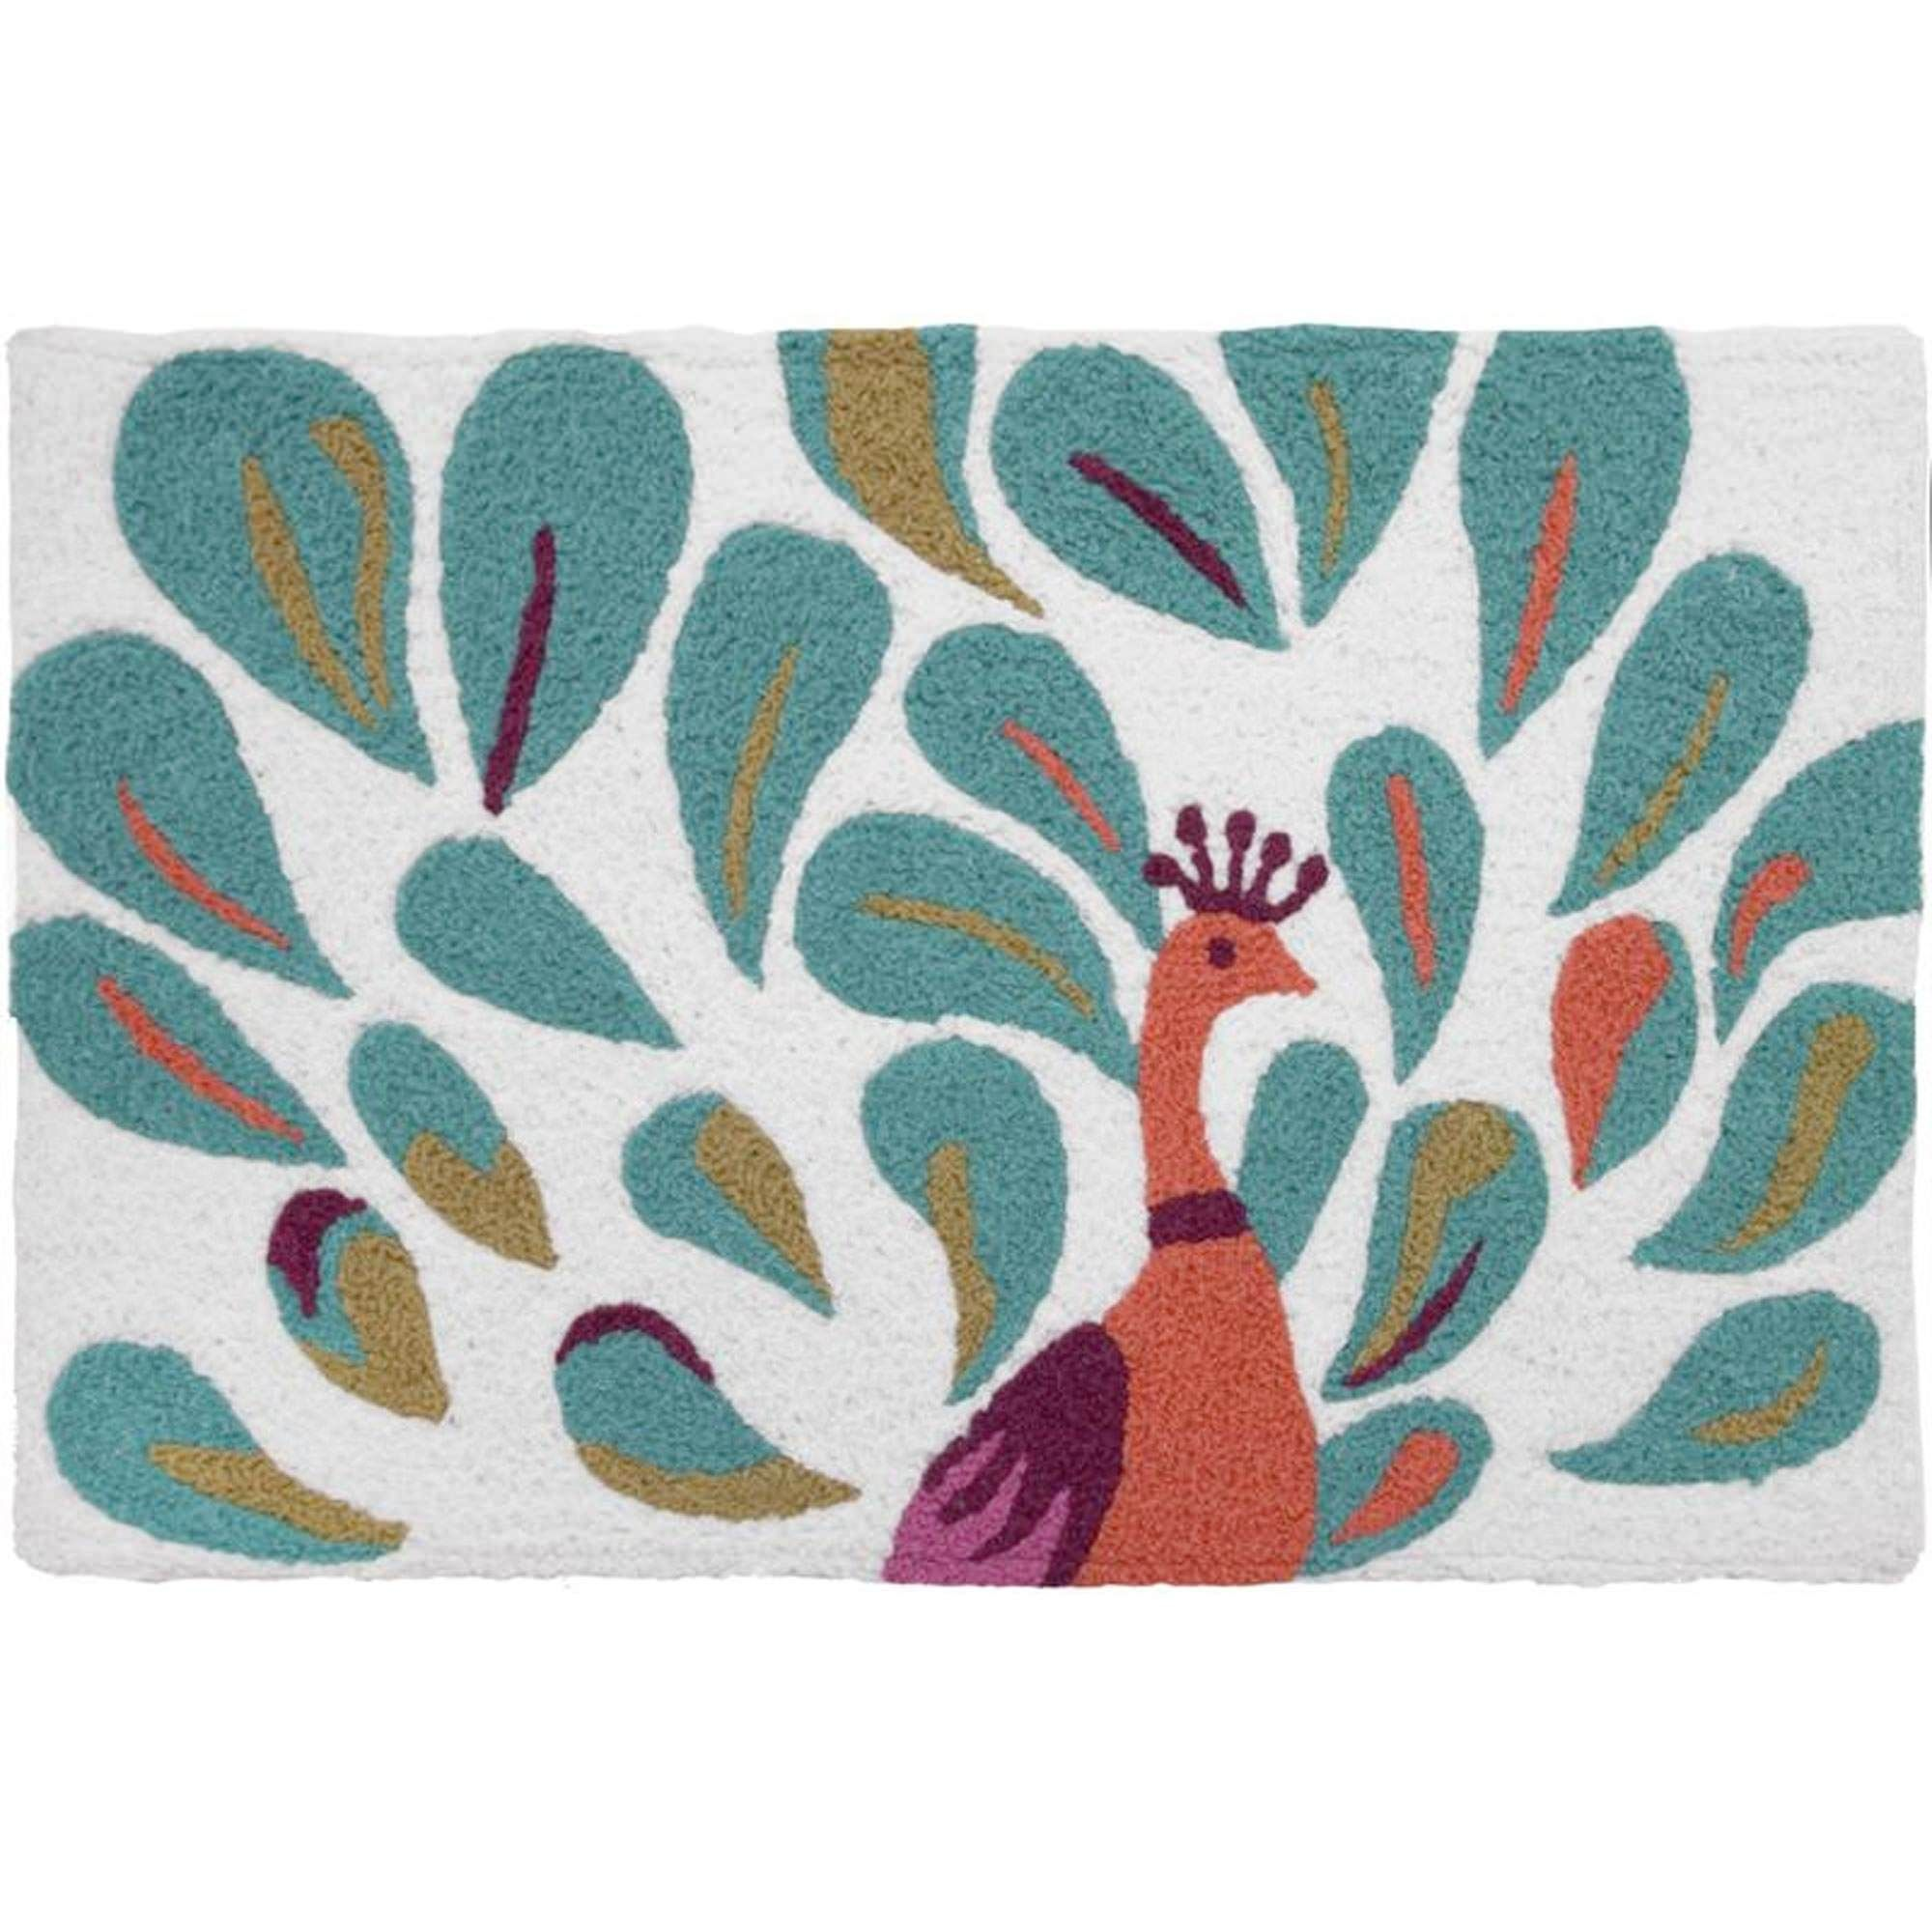 Jellybean Peacock Outdoor Door Mat Jellybean Sku Jb Sch001 Rugs Accent Rugs Rugs And Mats